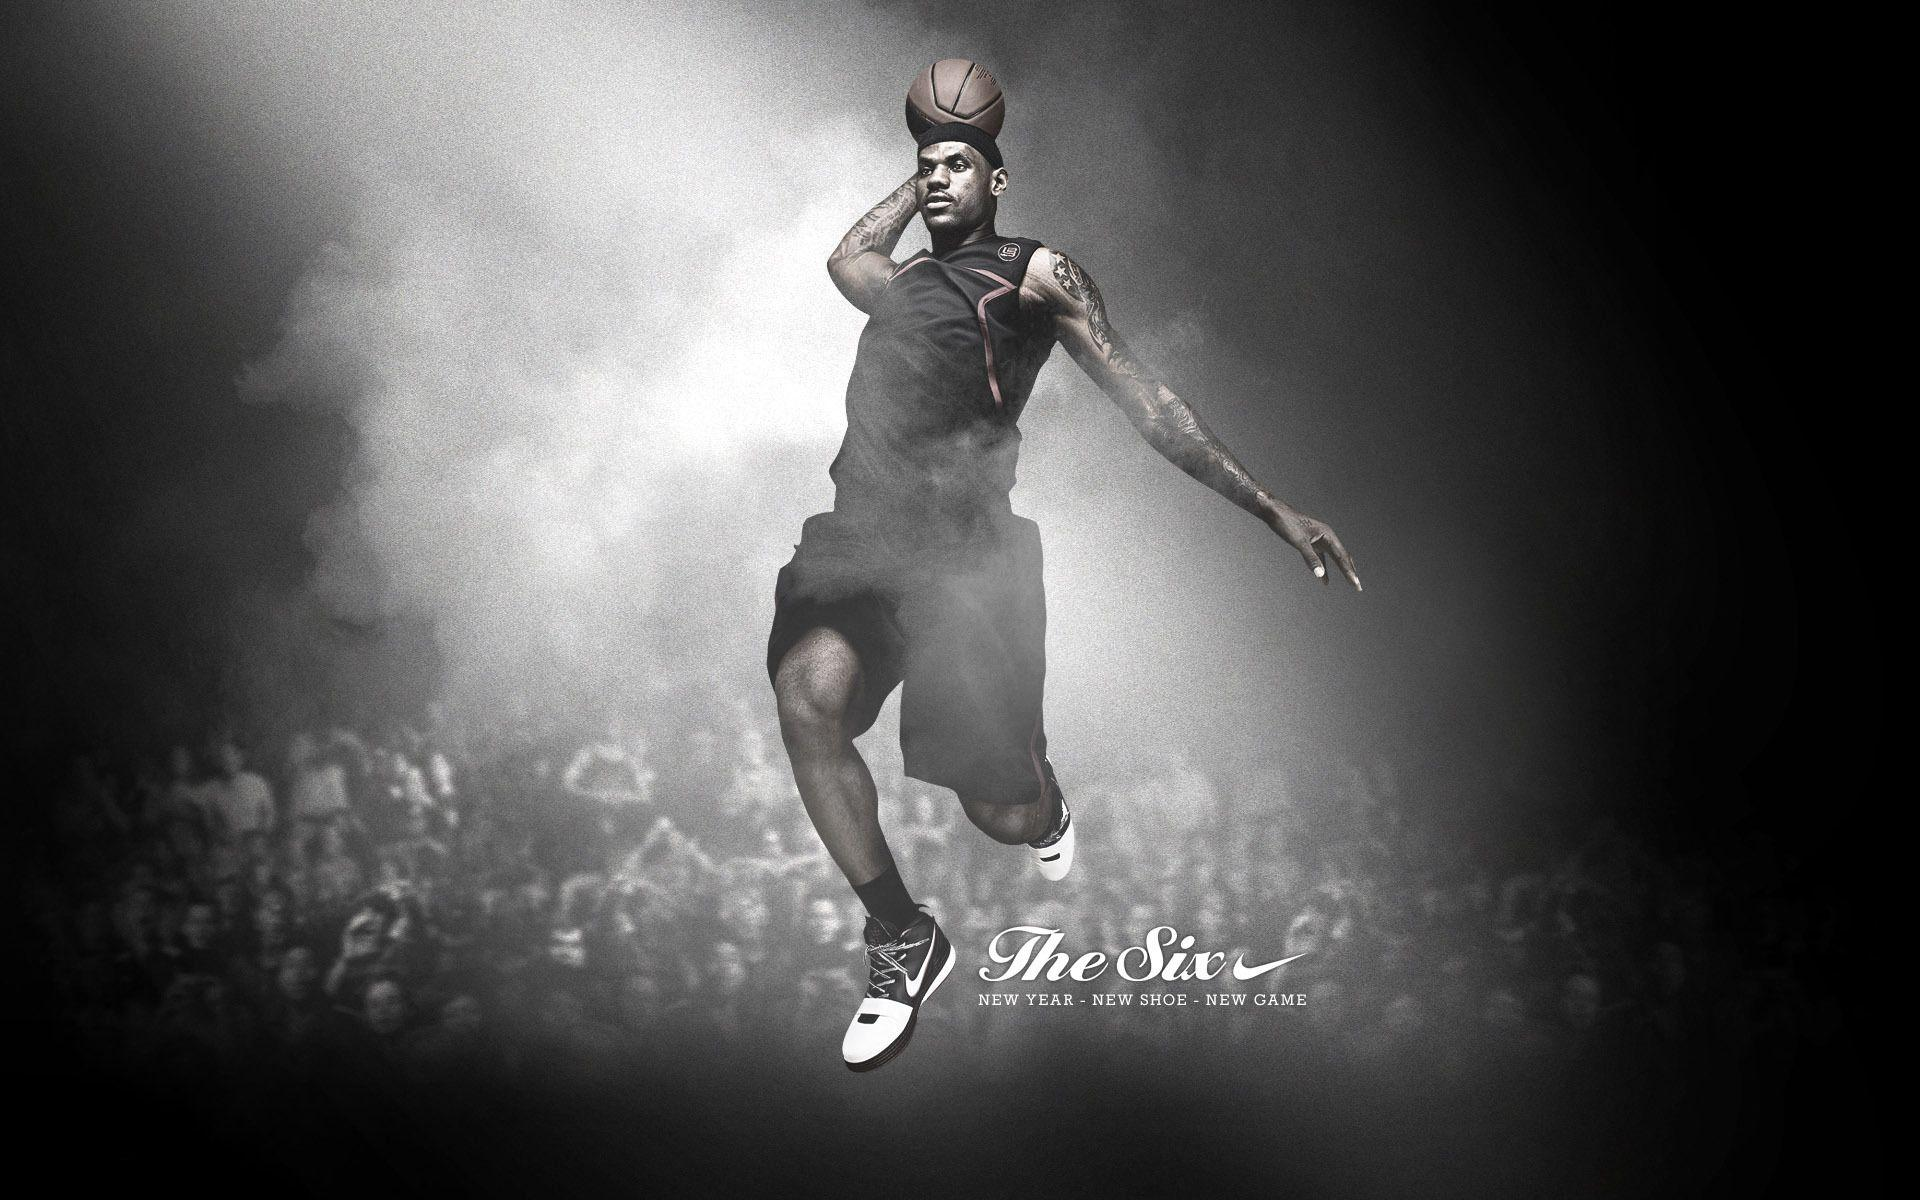 LeBron James HD Wallpapers - HD Images New